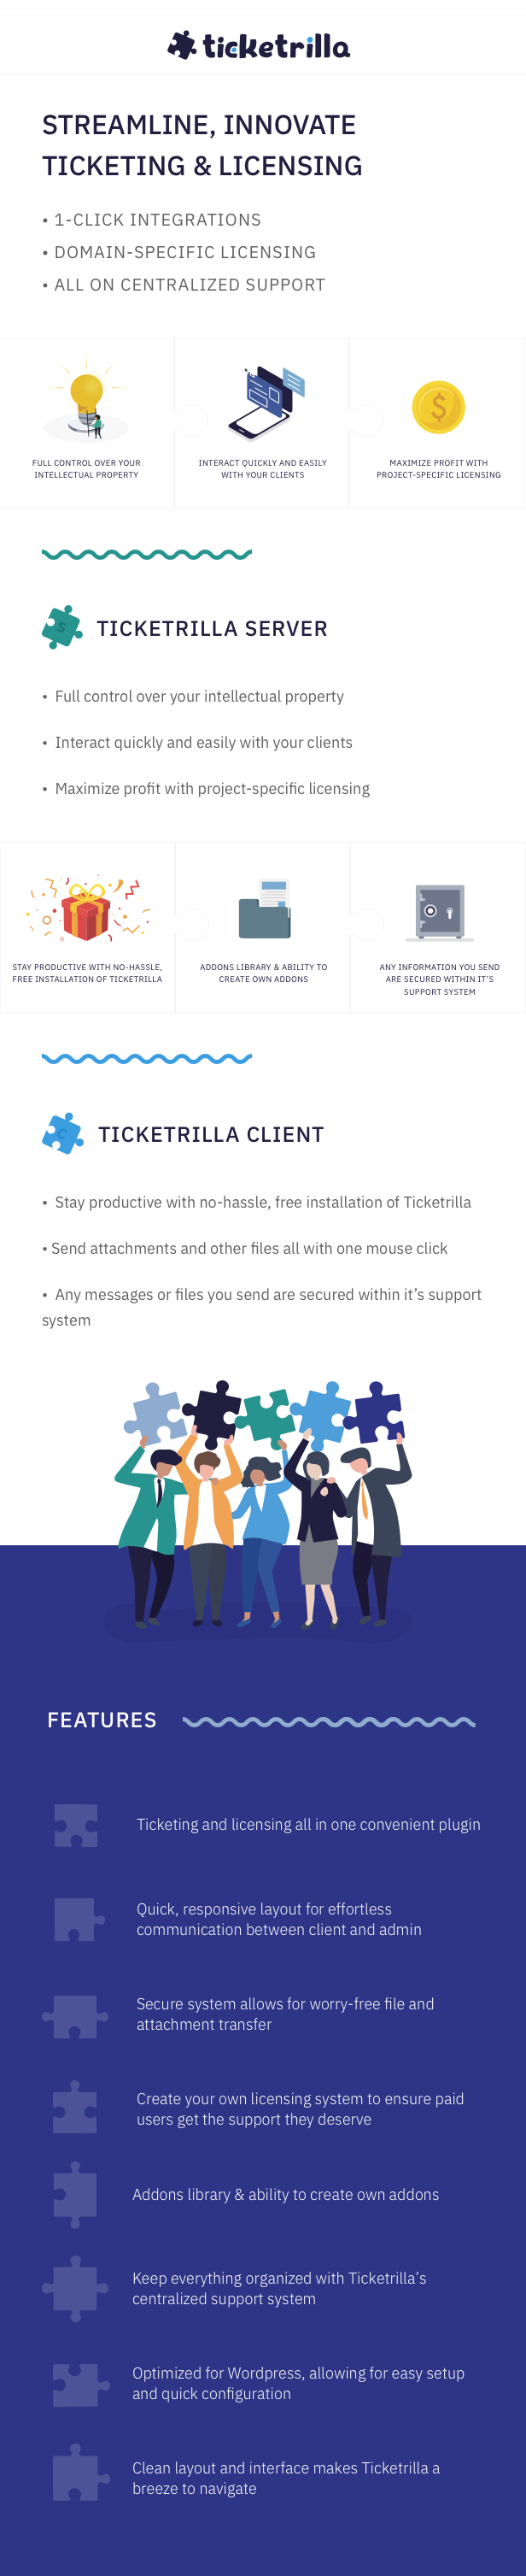 Ticketrilla: Server - 1